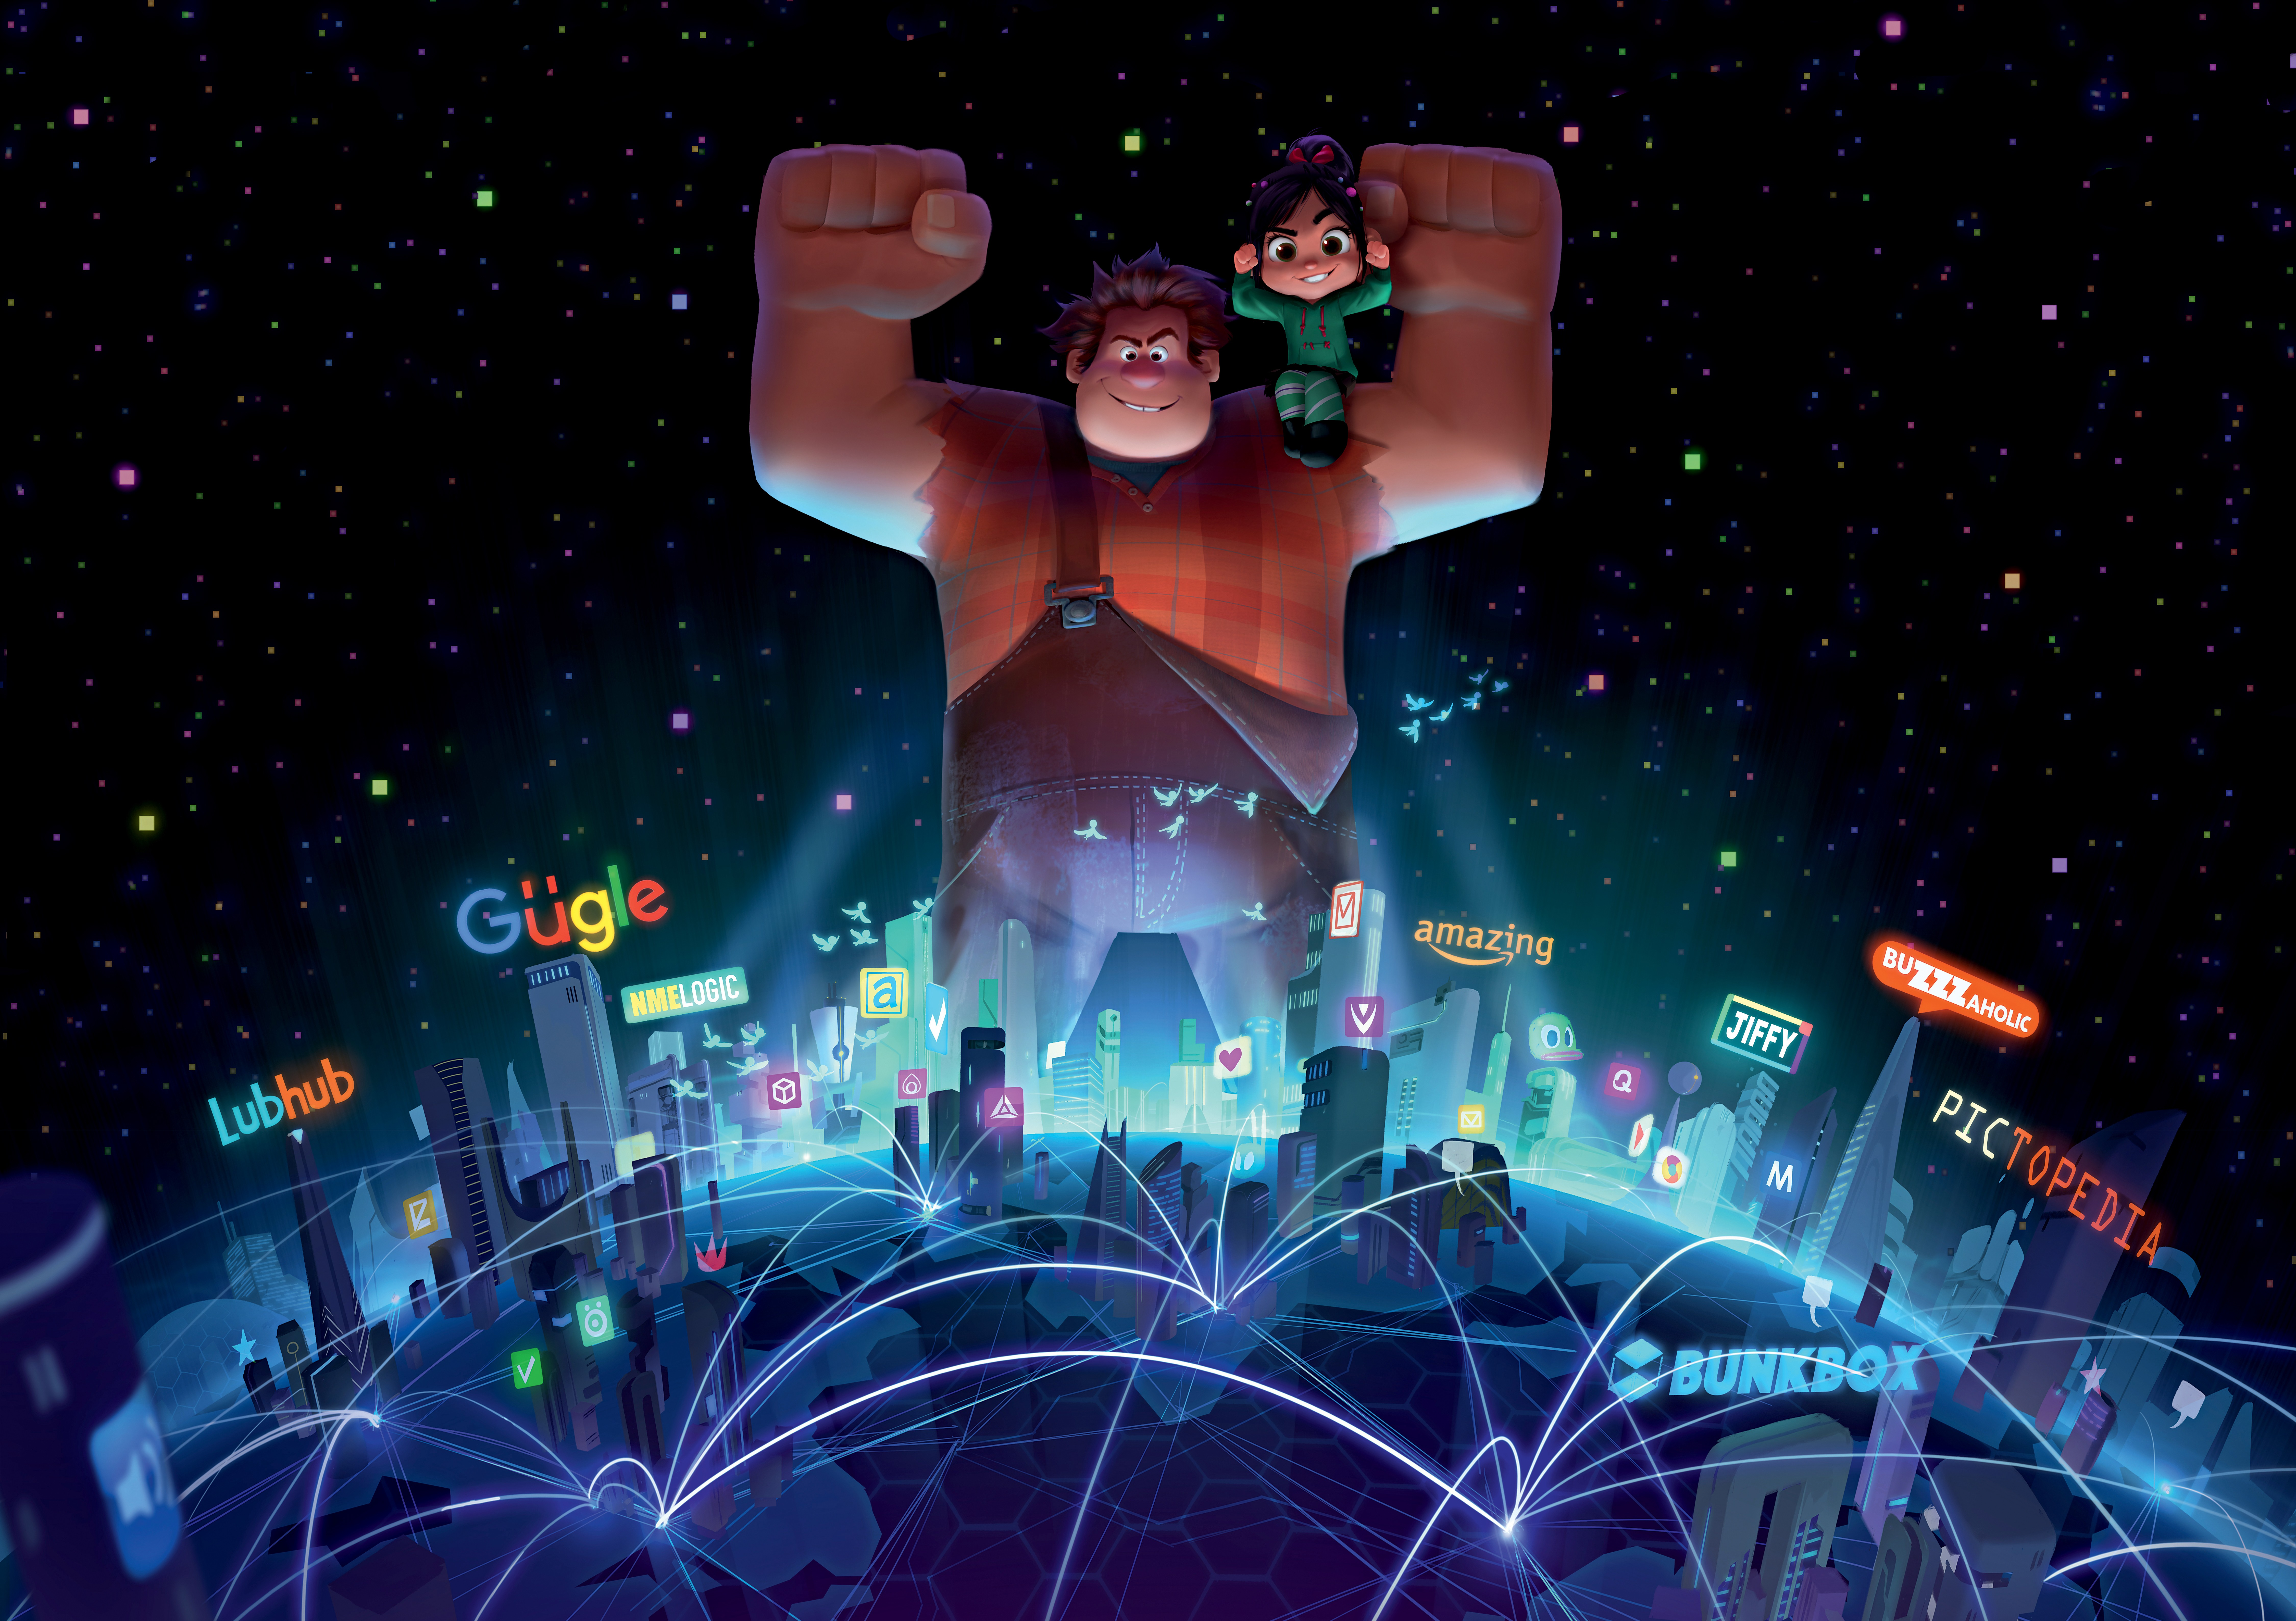 WRECKING THE INTERNET — Wreck-It Ralph is heading back to the big screen—this time he's wrecking the internet. John C. Reilly returns as the voice of the bad-guy-turned-good, Ralph, and Sarah Silverman once again lends her voice to the girl with the game- (Foto: Divulgação)